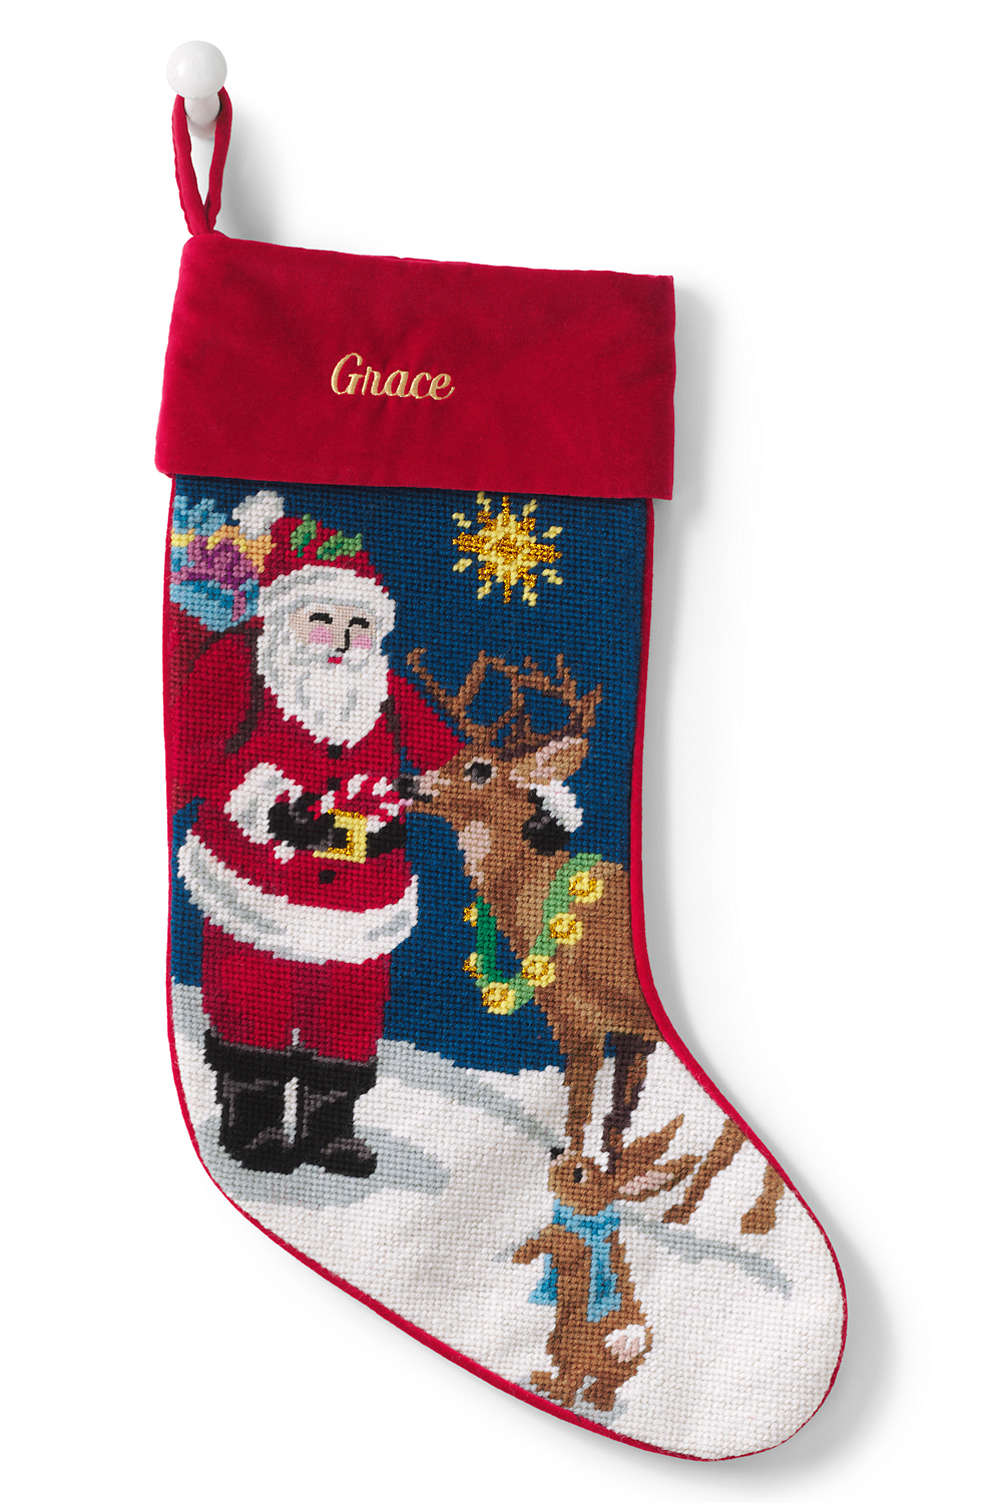 Lands End Christmas Stockings.Needlepoint Personalized Christmas Stocking With Velvet Cuff